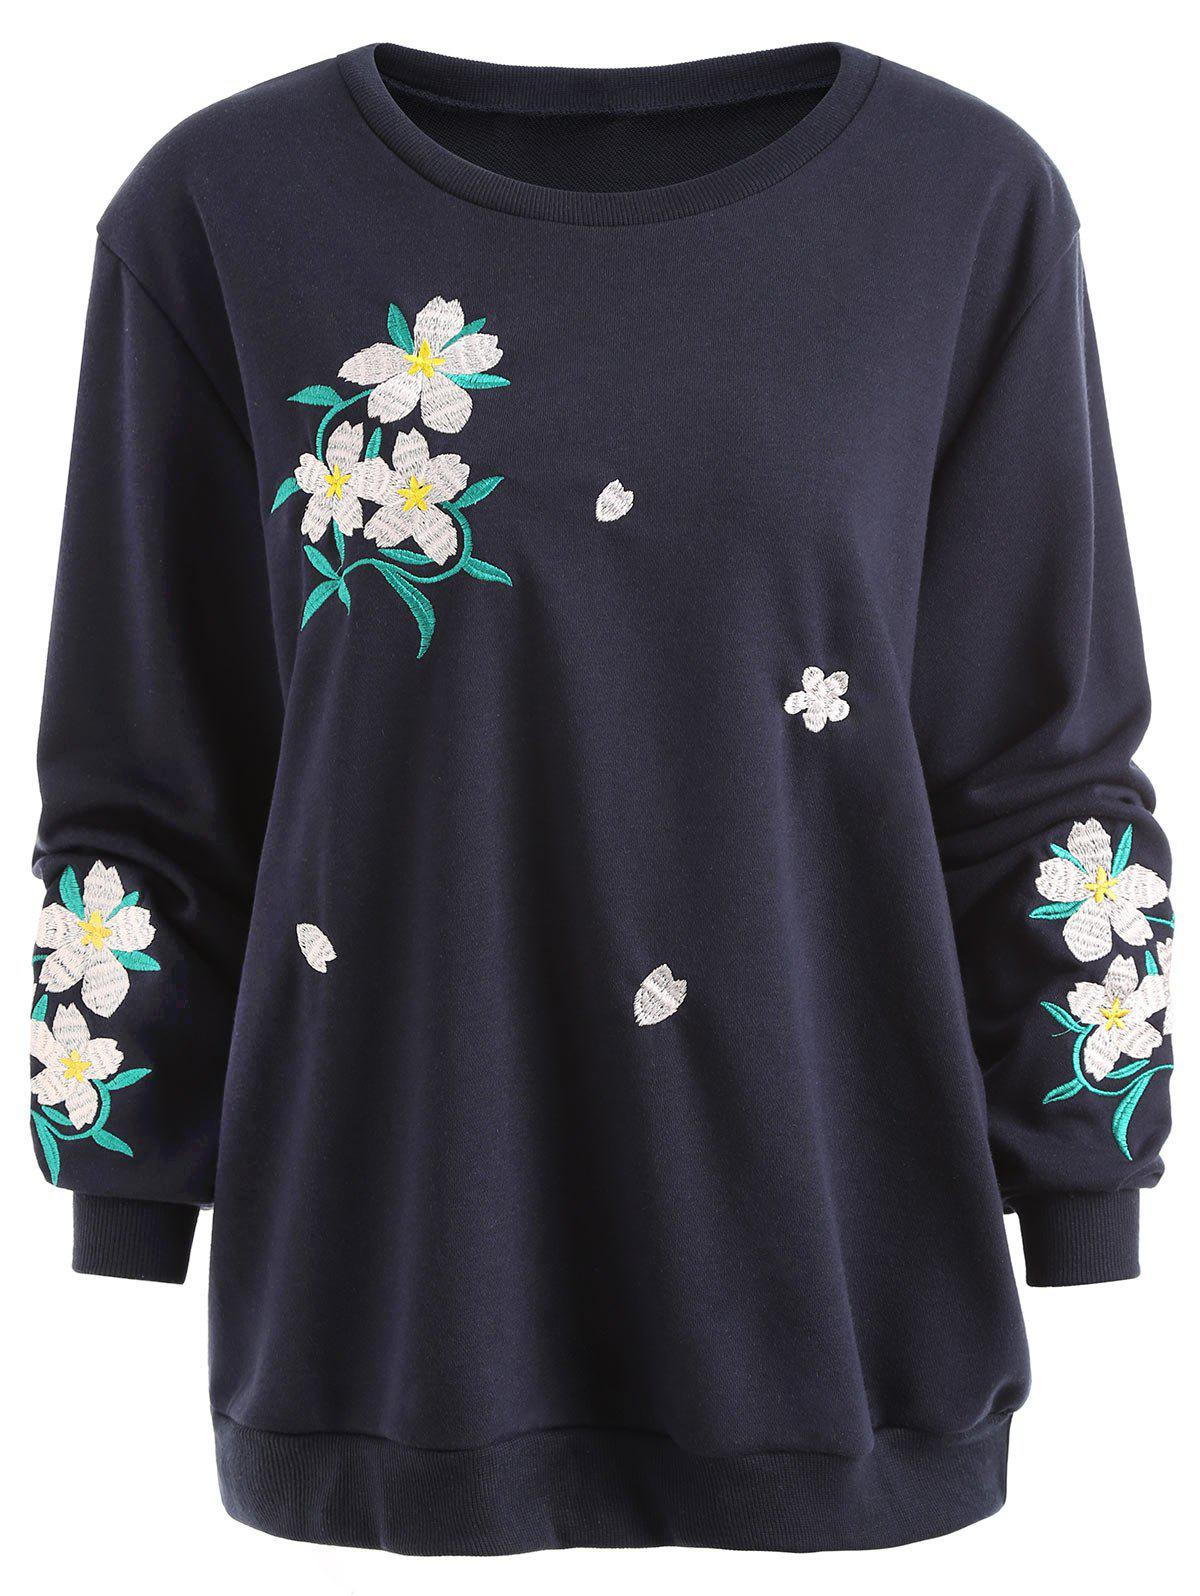 Online Floral Embroidered Plus Size Sweatshirt